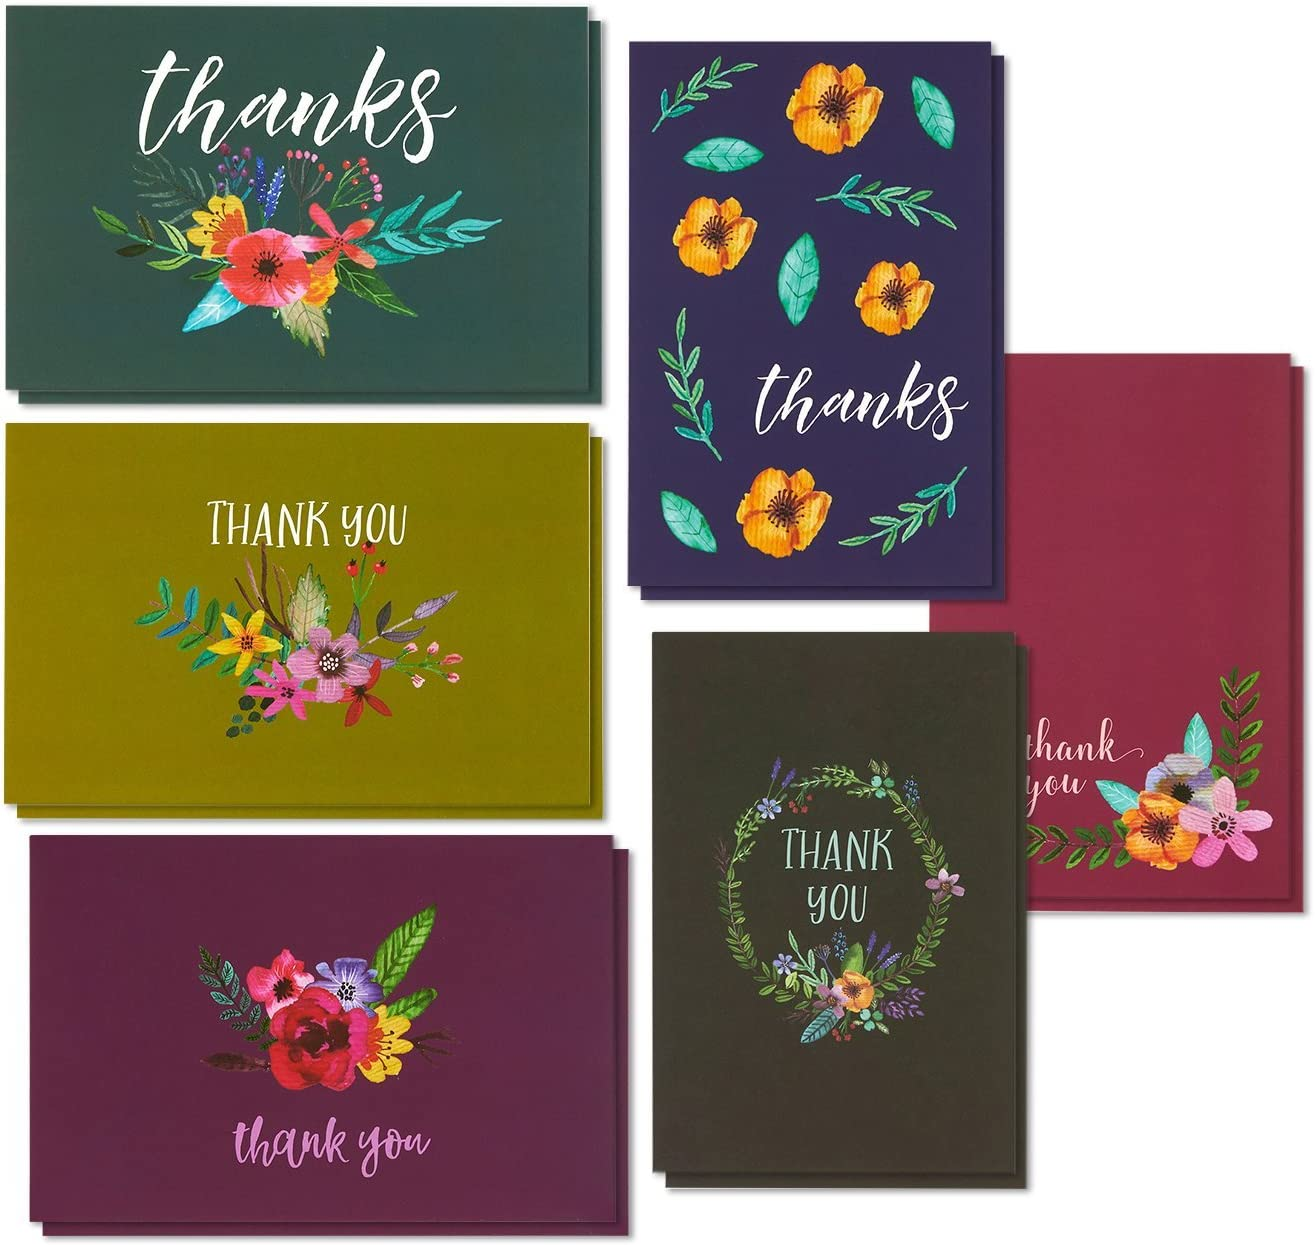 Thank You Cards - 48-Count Thank You Notes, Bulk Thank You Cards Set - Blank on the Inside, 6 Jewel Toned Watercolor Flower Floral Designs – Includes Thank You Cards and Envelopes, 4 x 6 Inches